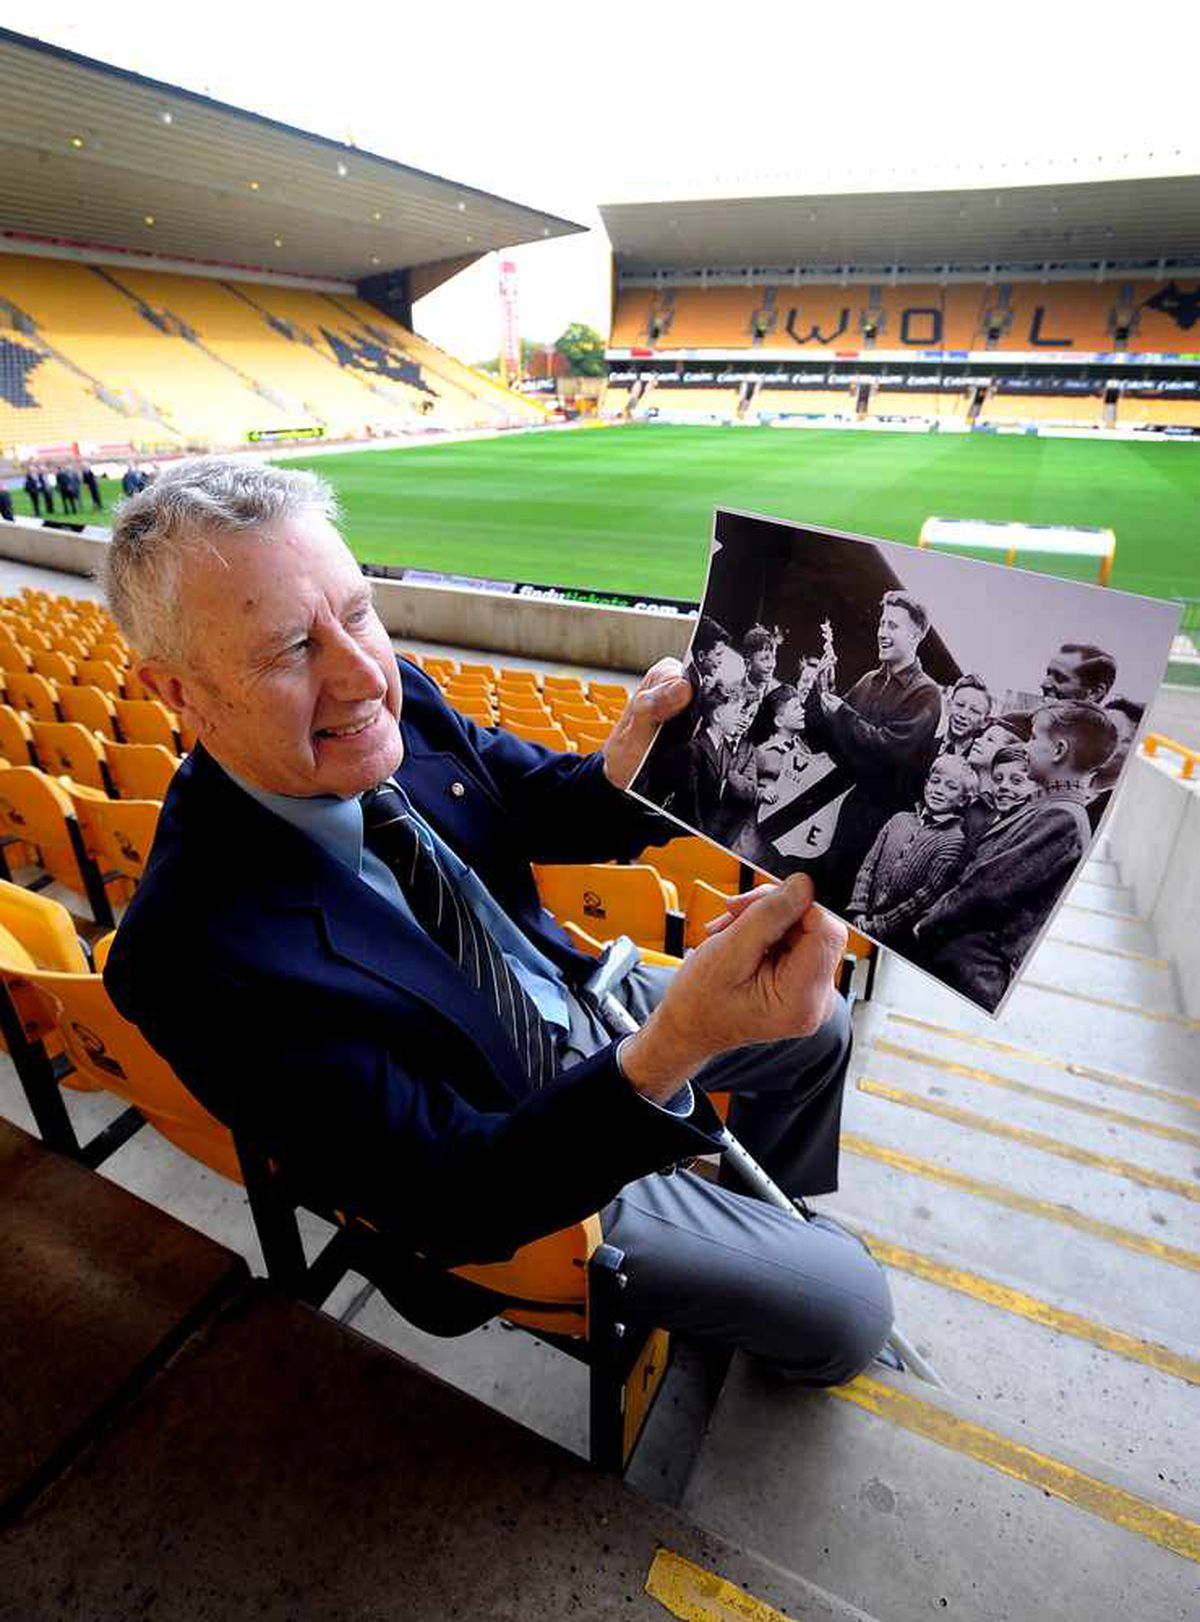 On a visit to Molineux in 2008